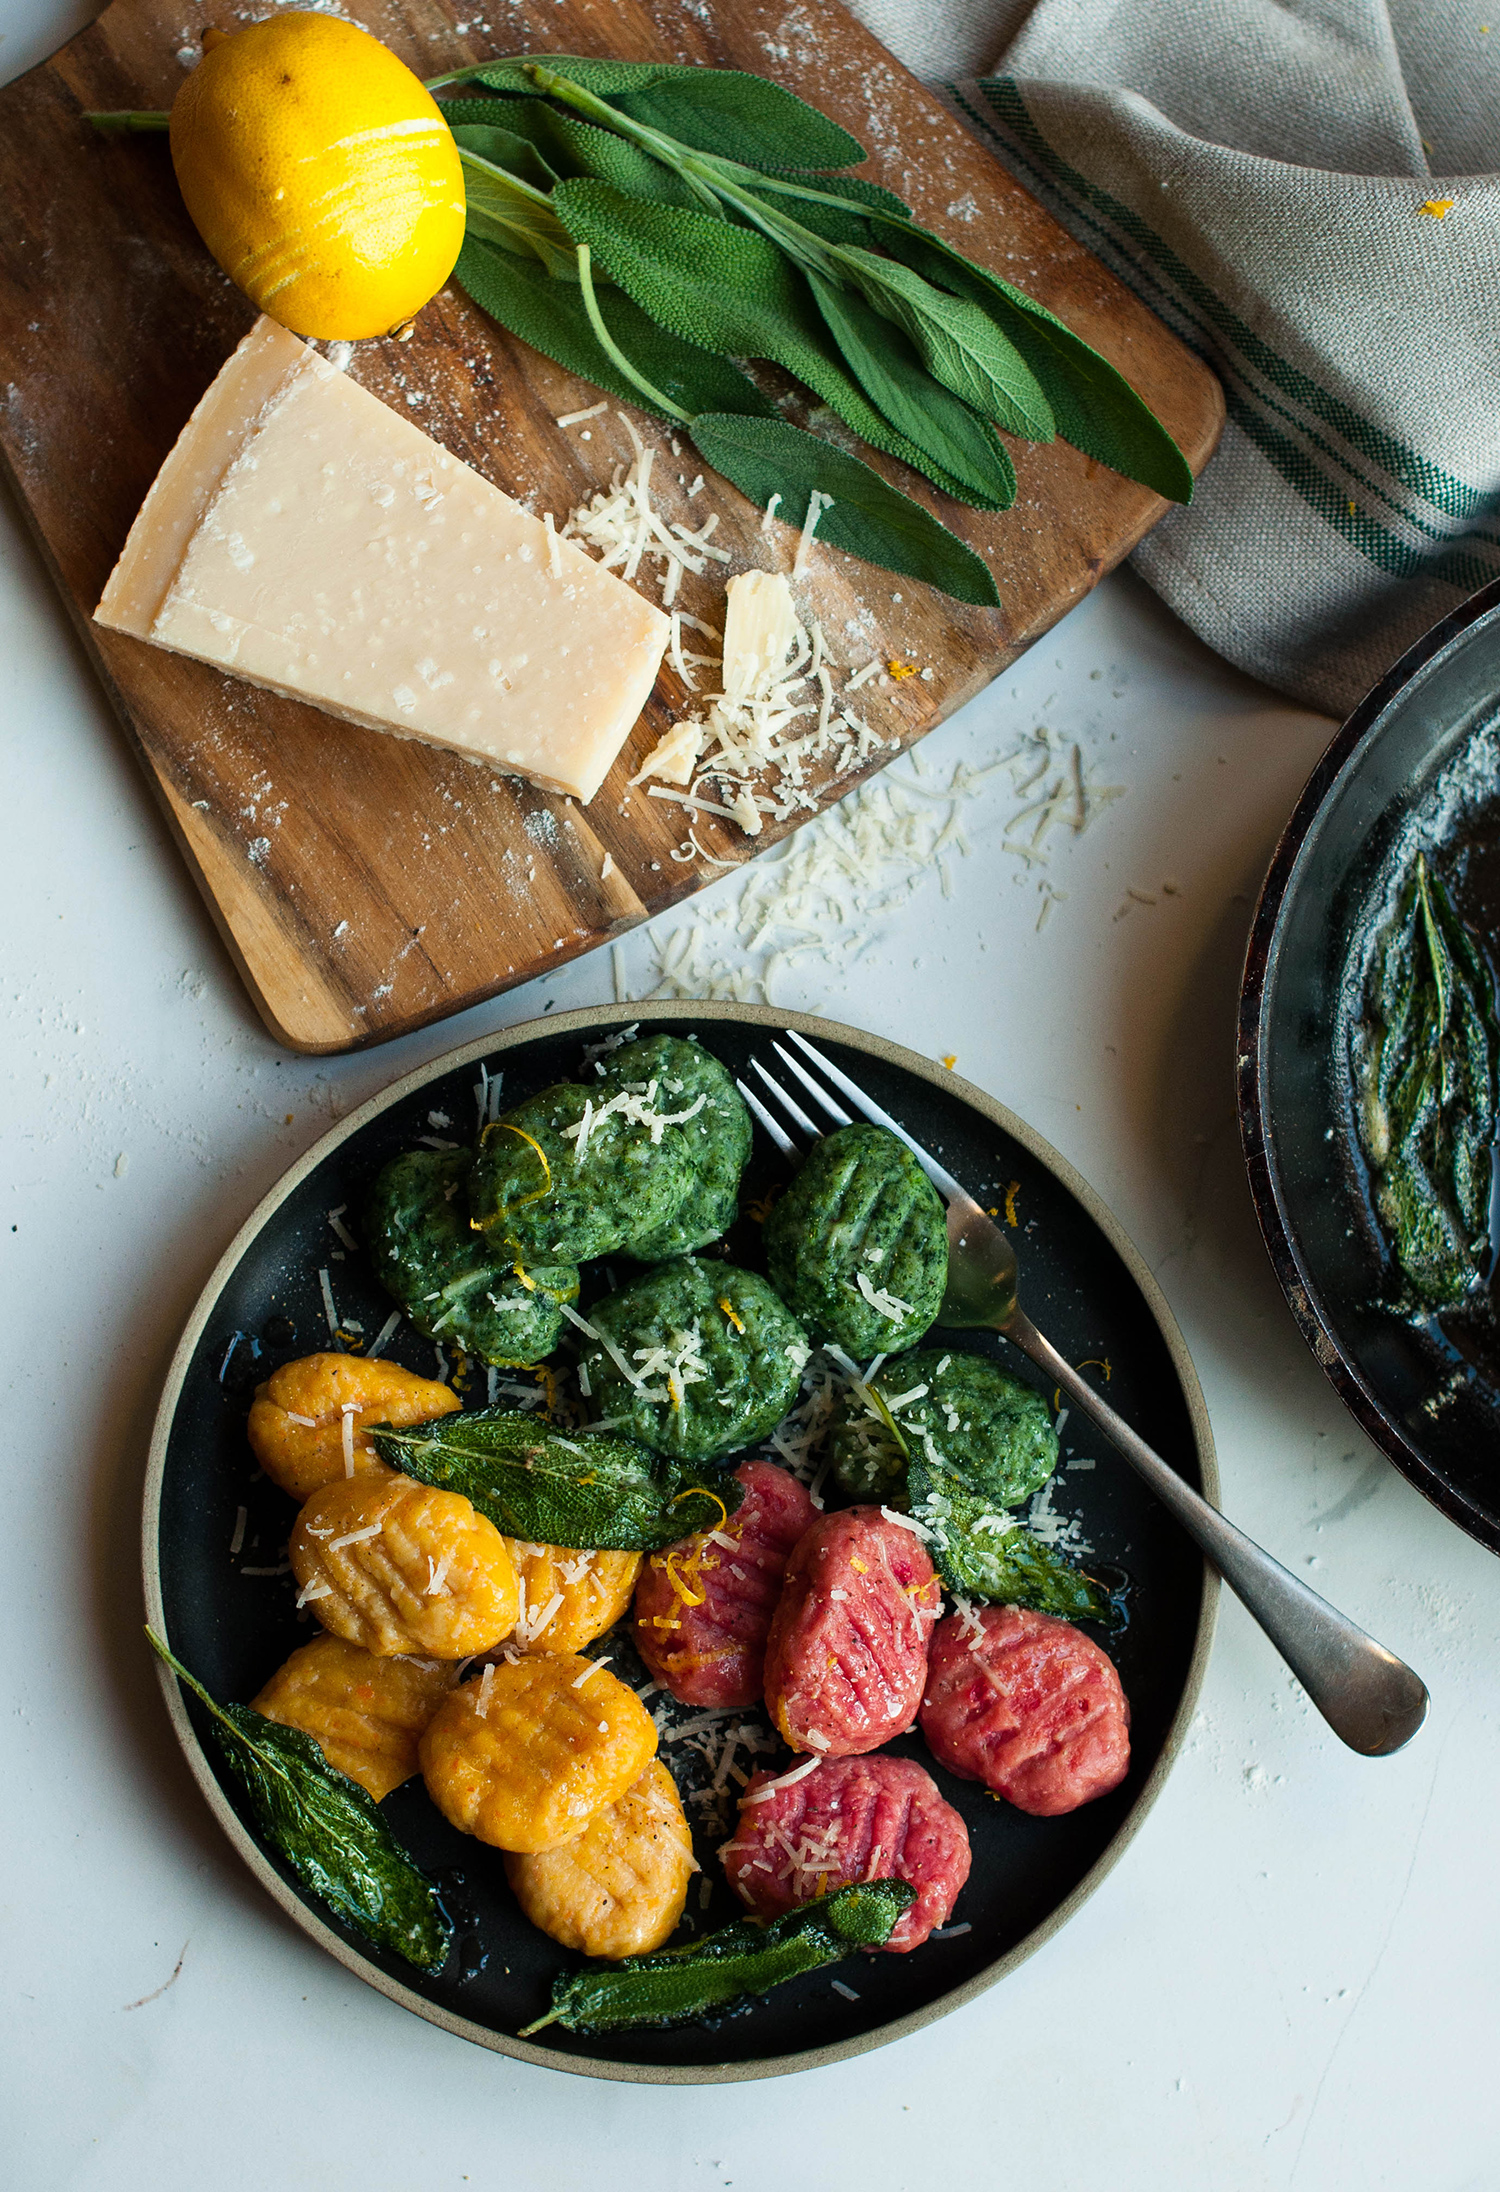 homemade-gnocchi-ricotta-spinach-carrot-beetroot-lea-lou-3